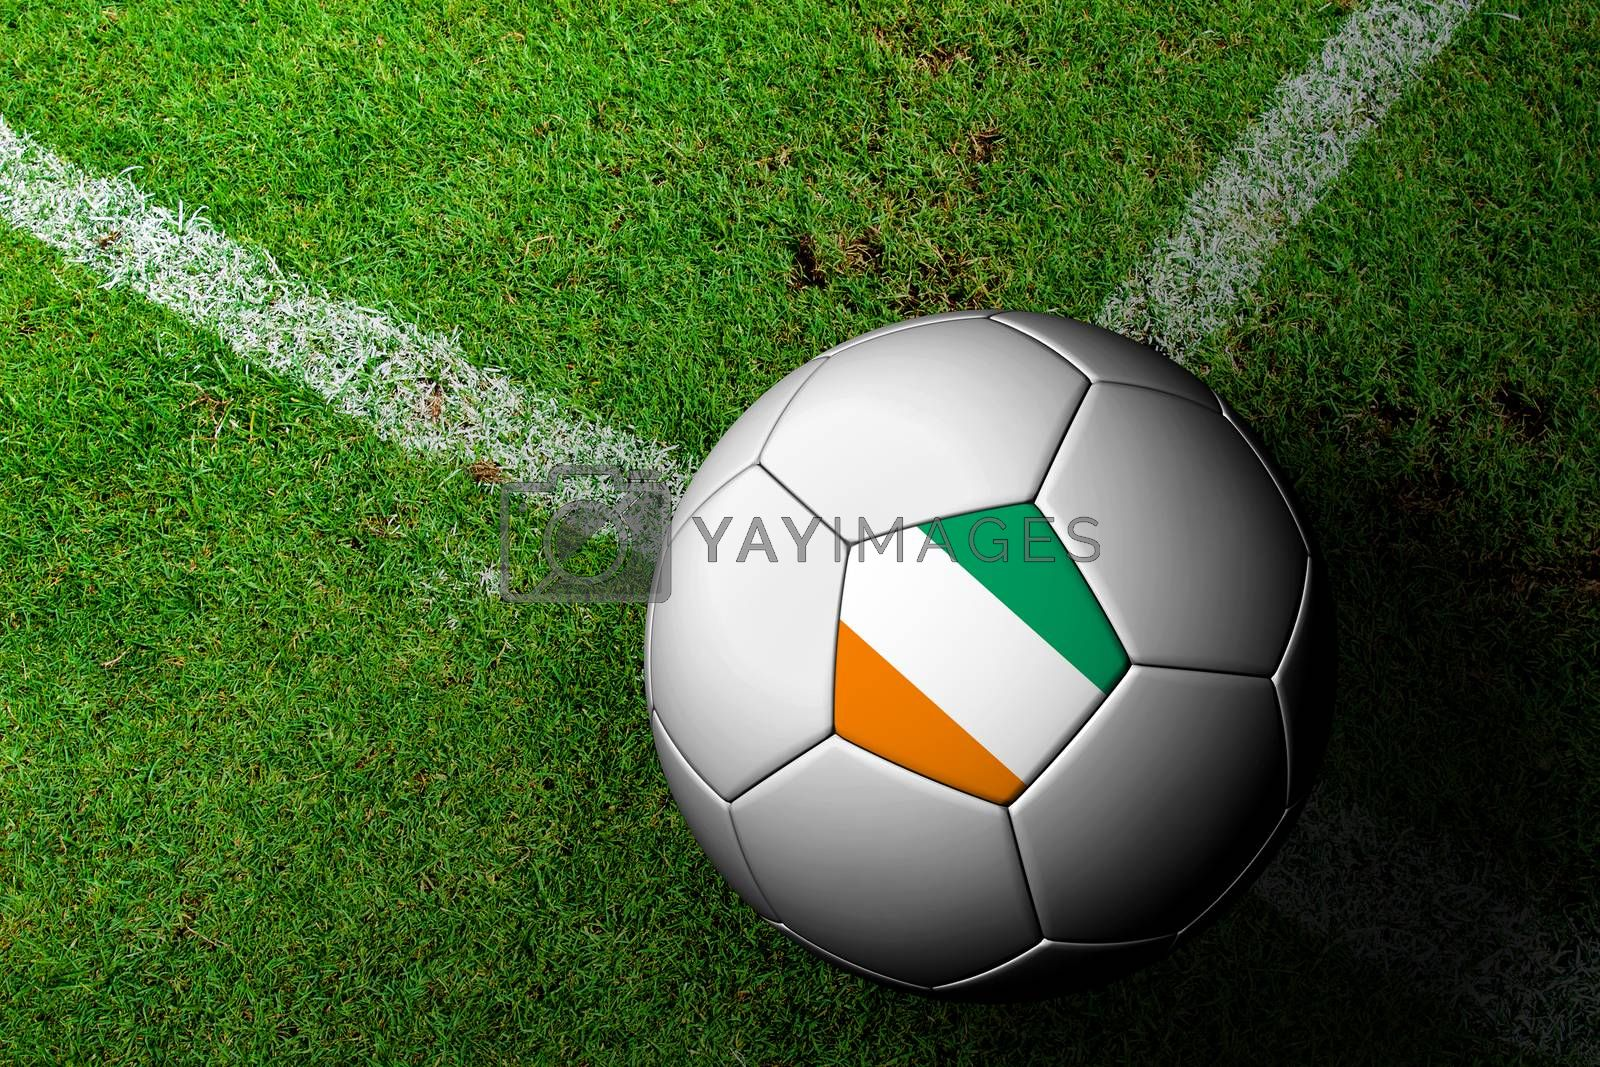 Royalty free image of Ivory Coast Flag Pattern of a soccer ball in green grass by jakgree